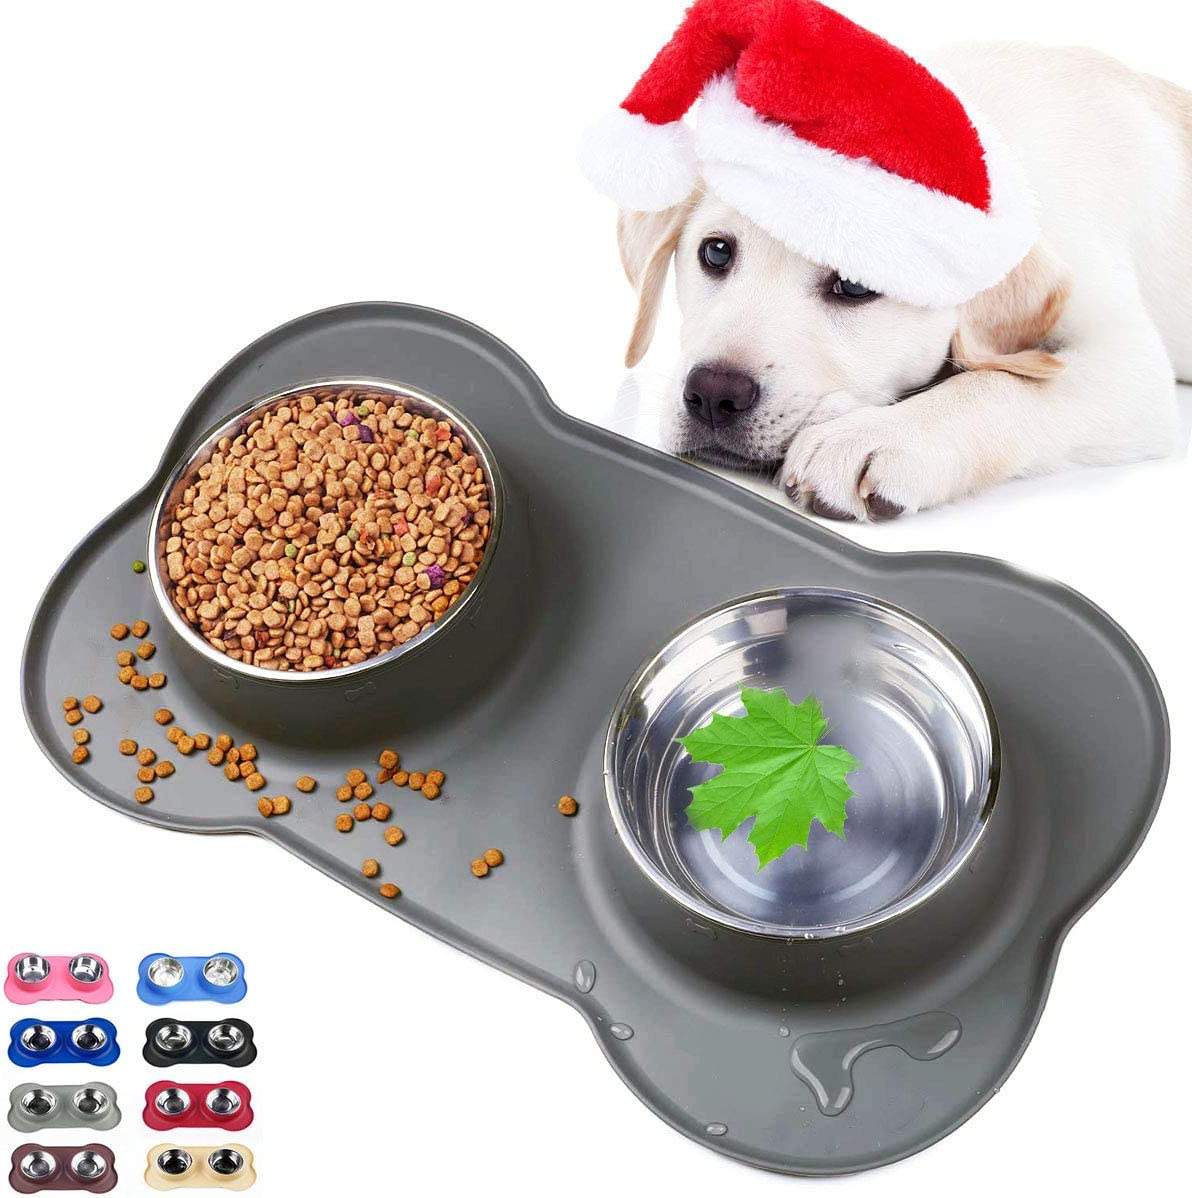 Sequoialake Dog Bowls with Anti-Overflow and Anti-Skid Silicone Dog Food Mat, Stainless Steel Feeder Easy to Clean for Small Medium Large Dogs Cats Pets